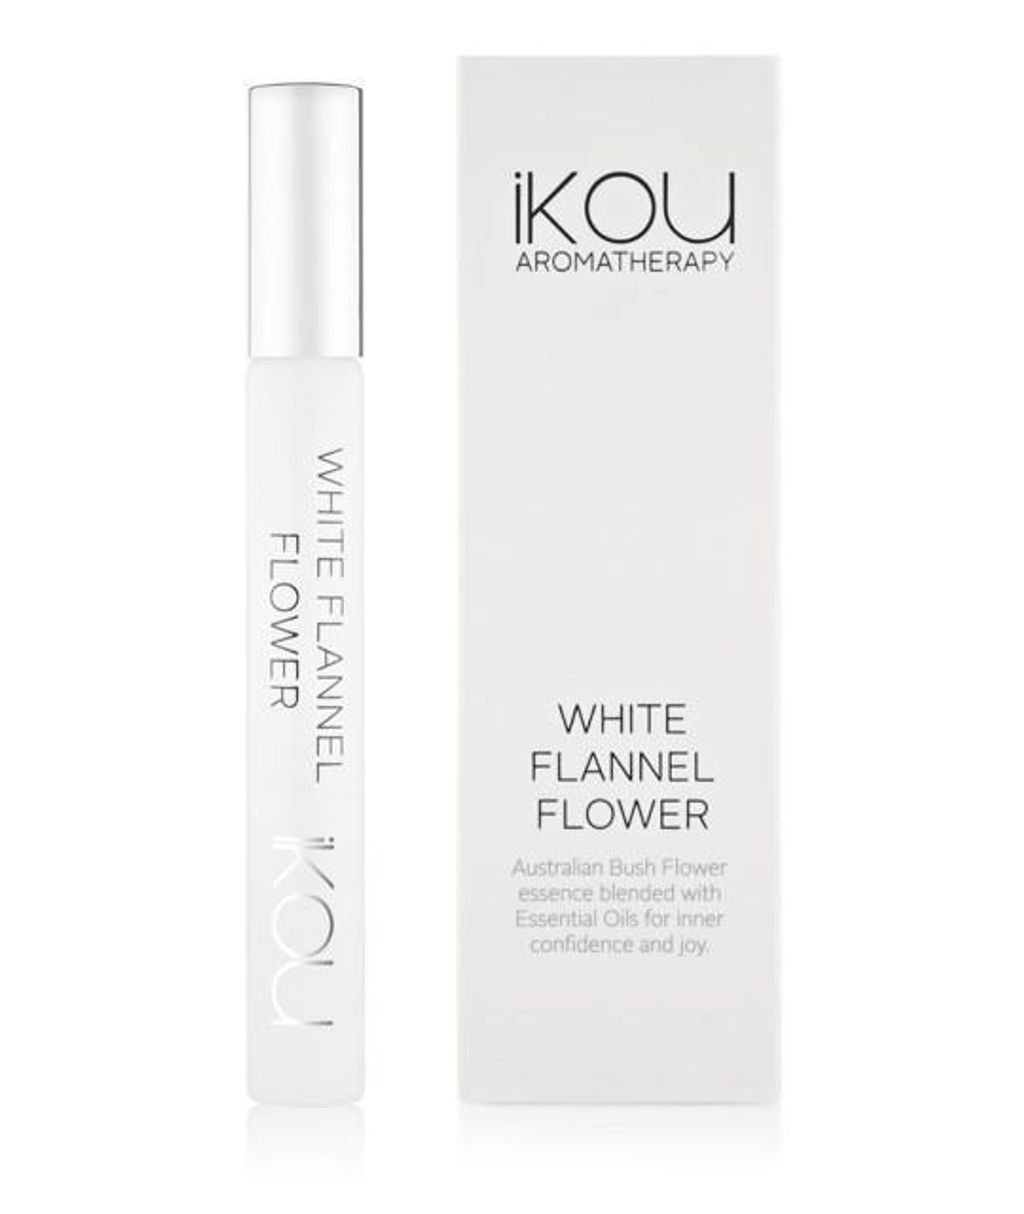 iKOU_PURE_RESULTS_LORES__12_1800x1800